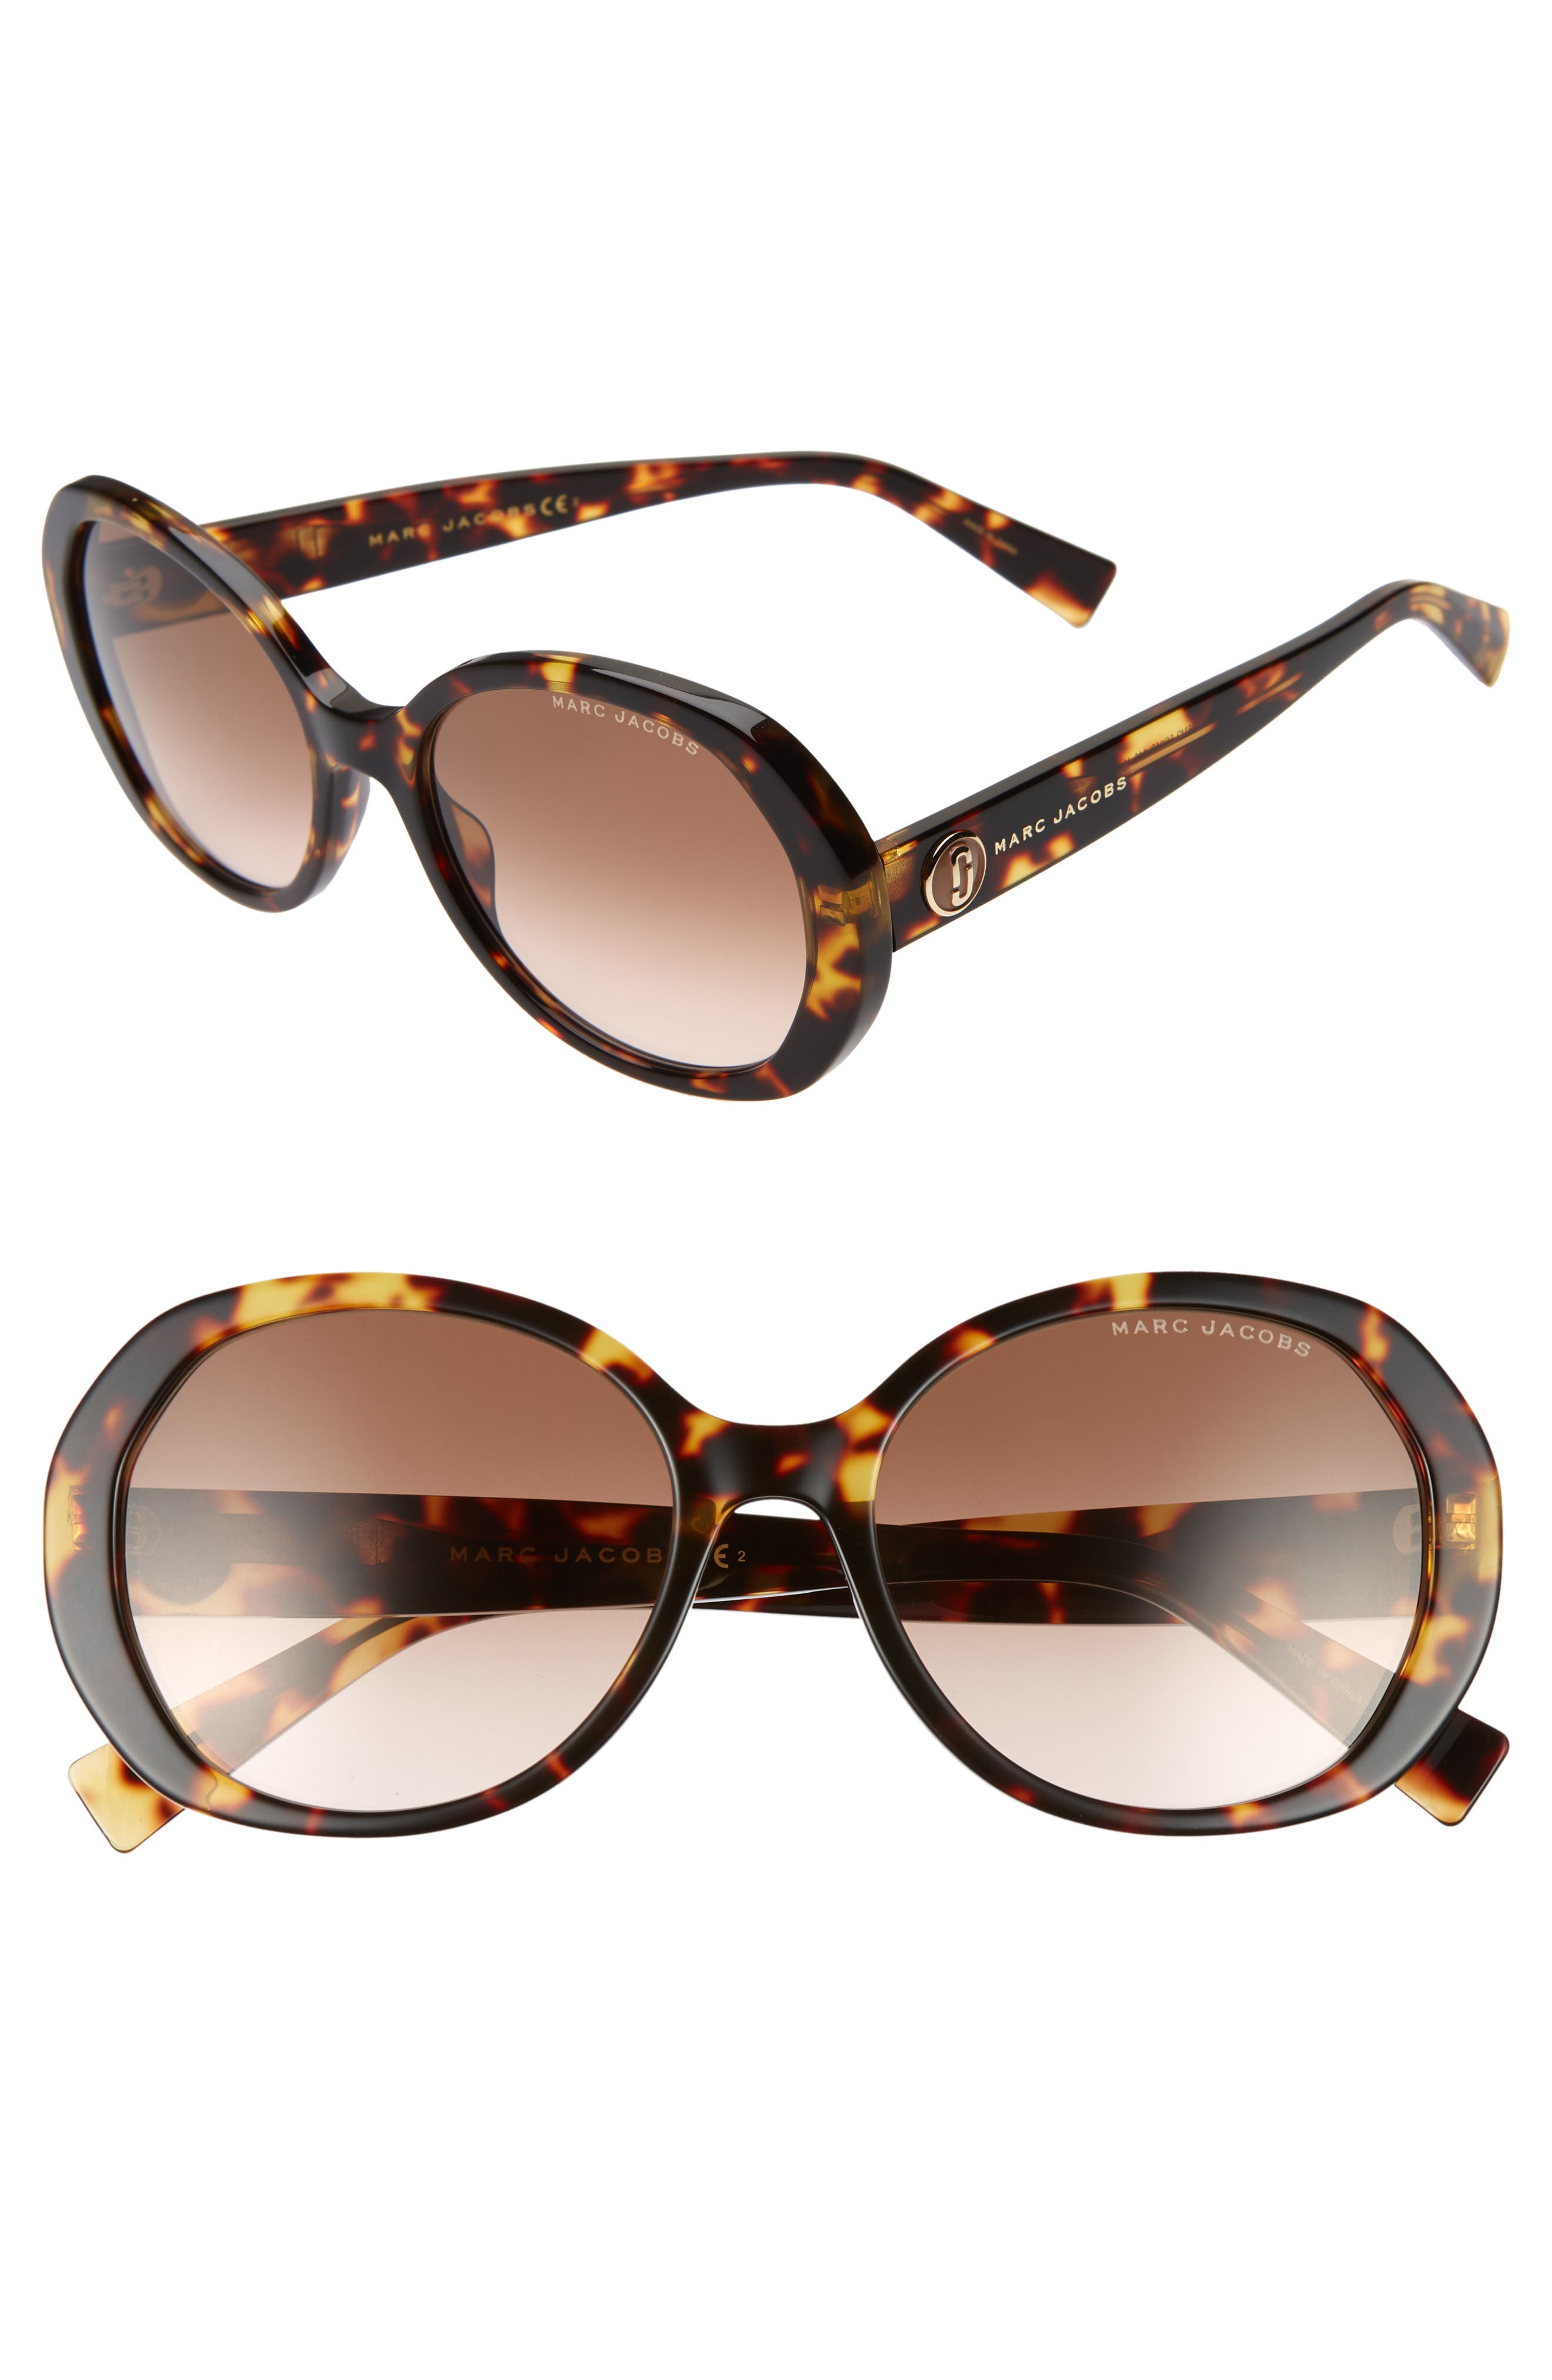 MARC JACOBS,                             56mm Round Sunglasses,                             Main thumbnail 1, color,                             BLACK DARK HAVANA